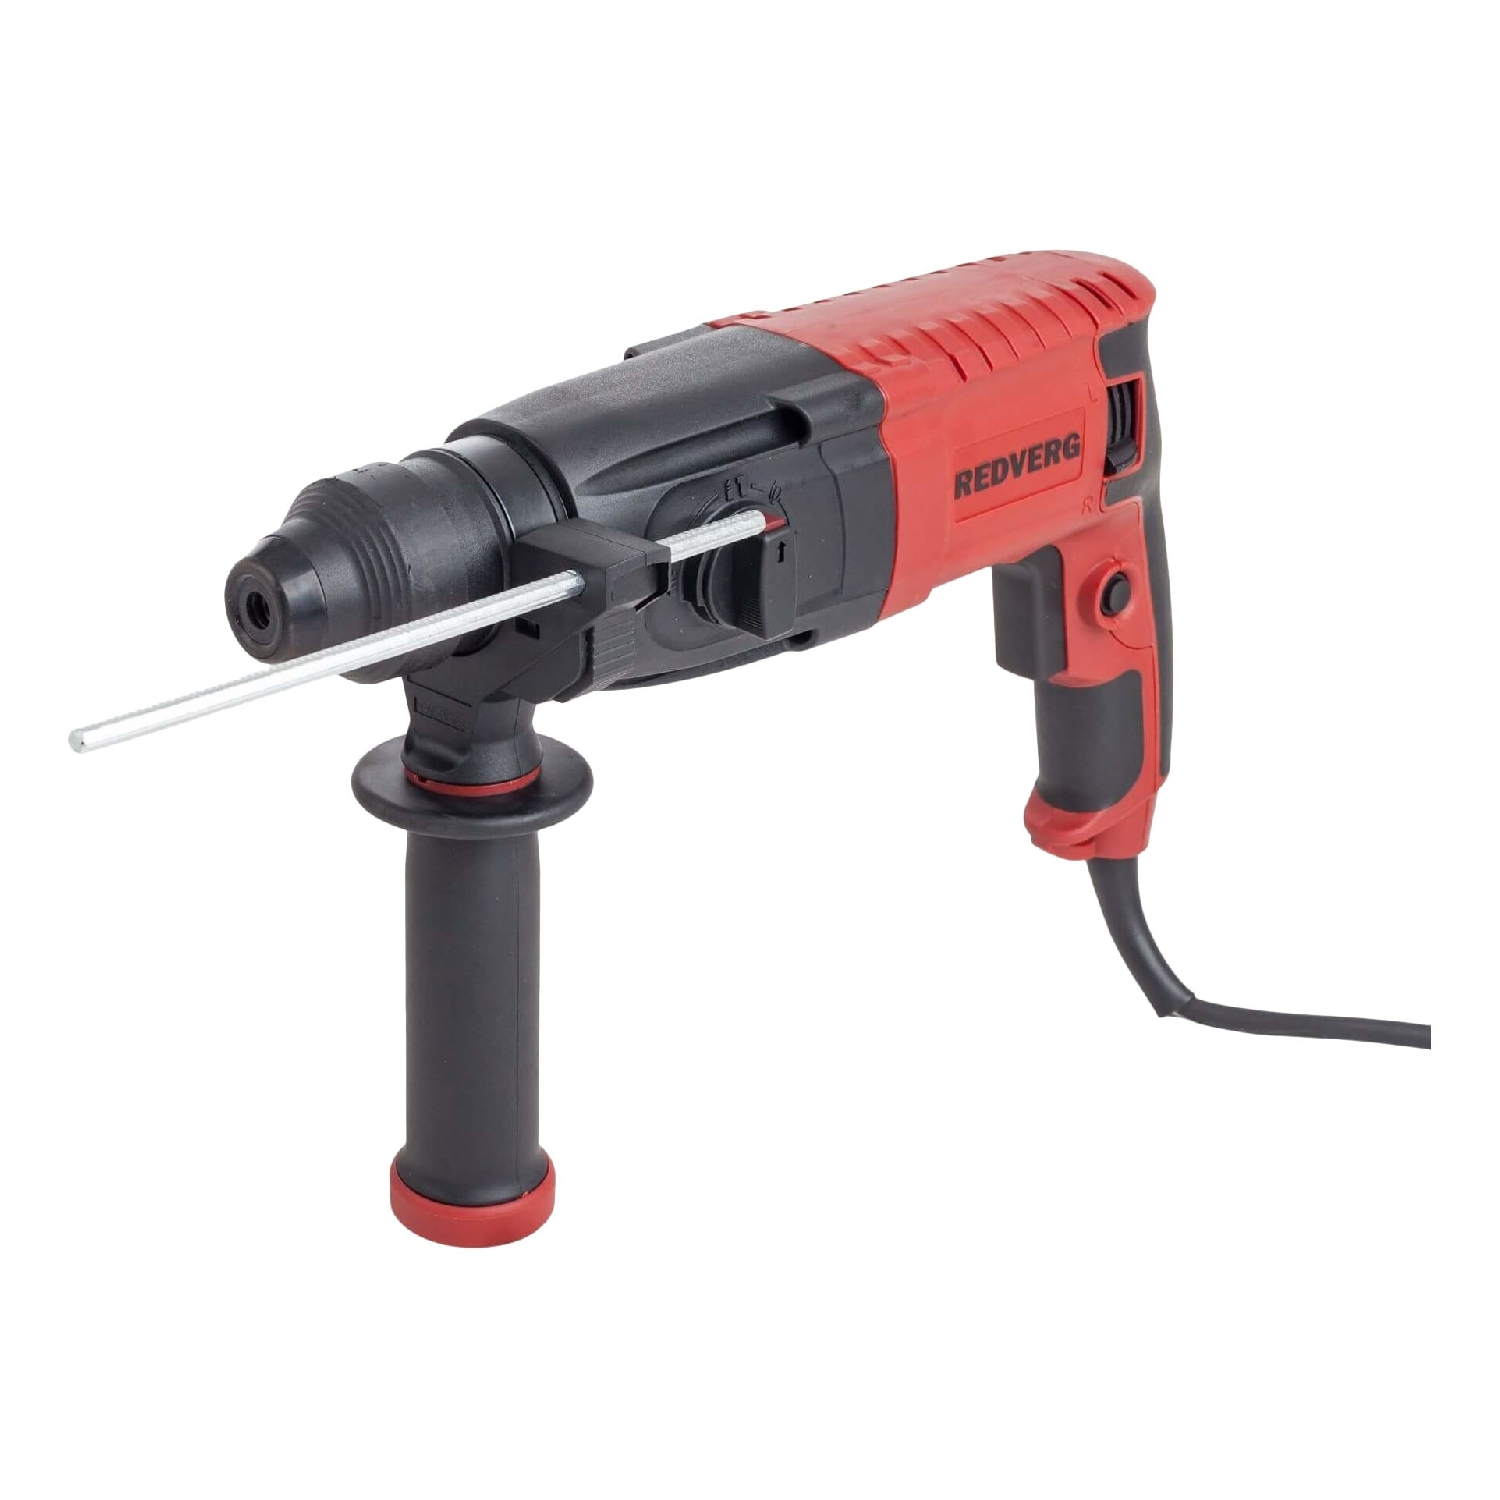 Electric hammer drill RedVerg RD-RH850 (power 850 W, SDS + drill chuck, impact energy 2,5 J) стоимость